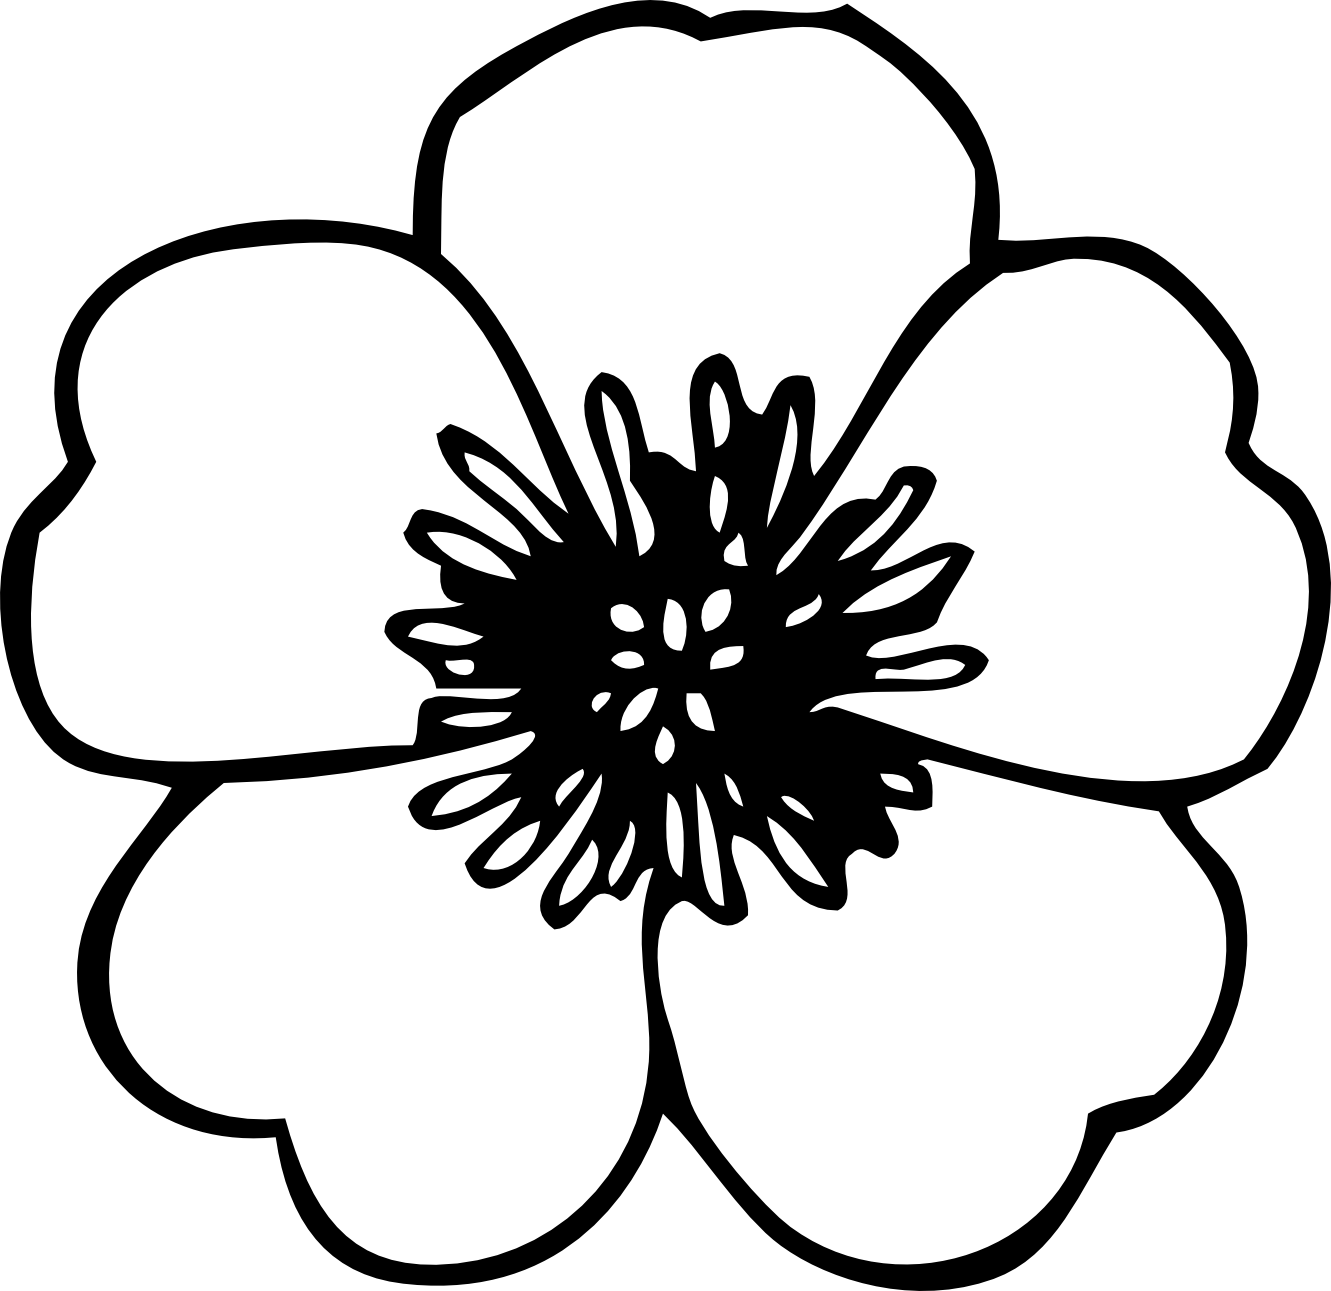 Daisy flower clipart free png free stock Flowers Clipart Black And White & Flowers Black And White Clip Art ... png free stock